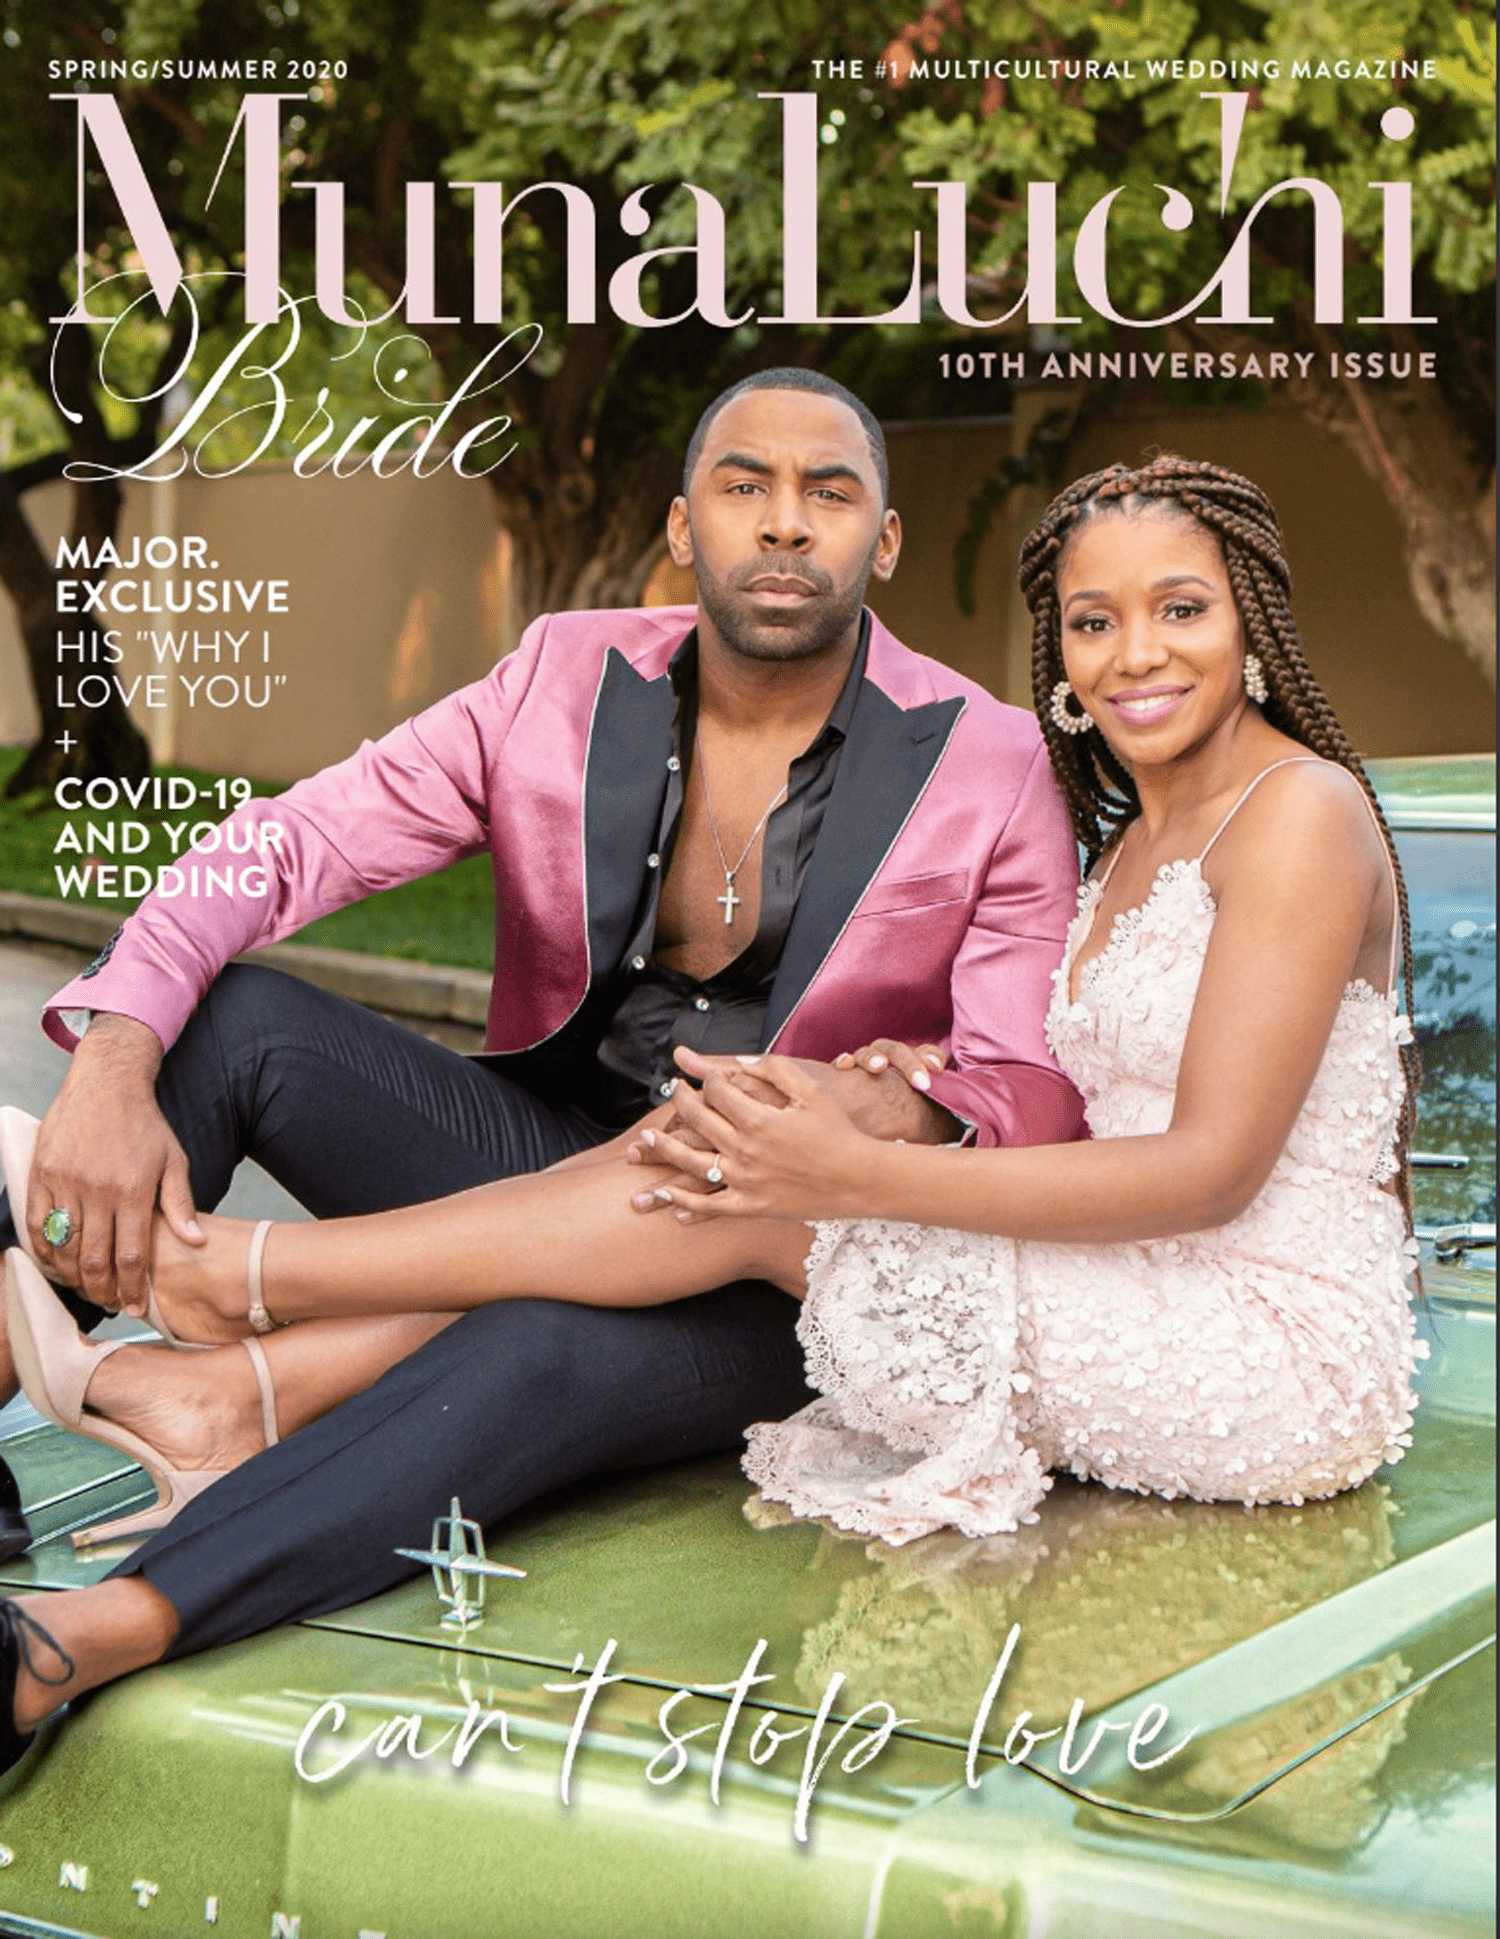 Cover of the lates Muna Luchi Bride Magazine Spring / Summer 2020 edition